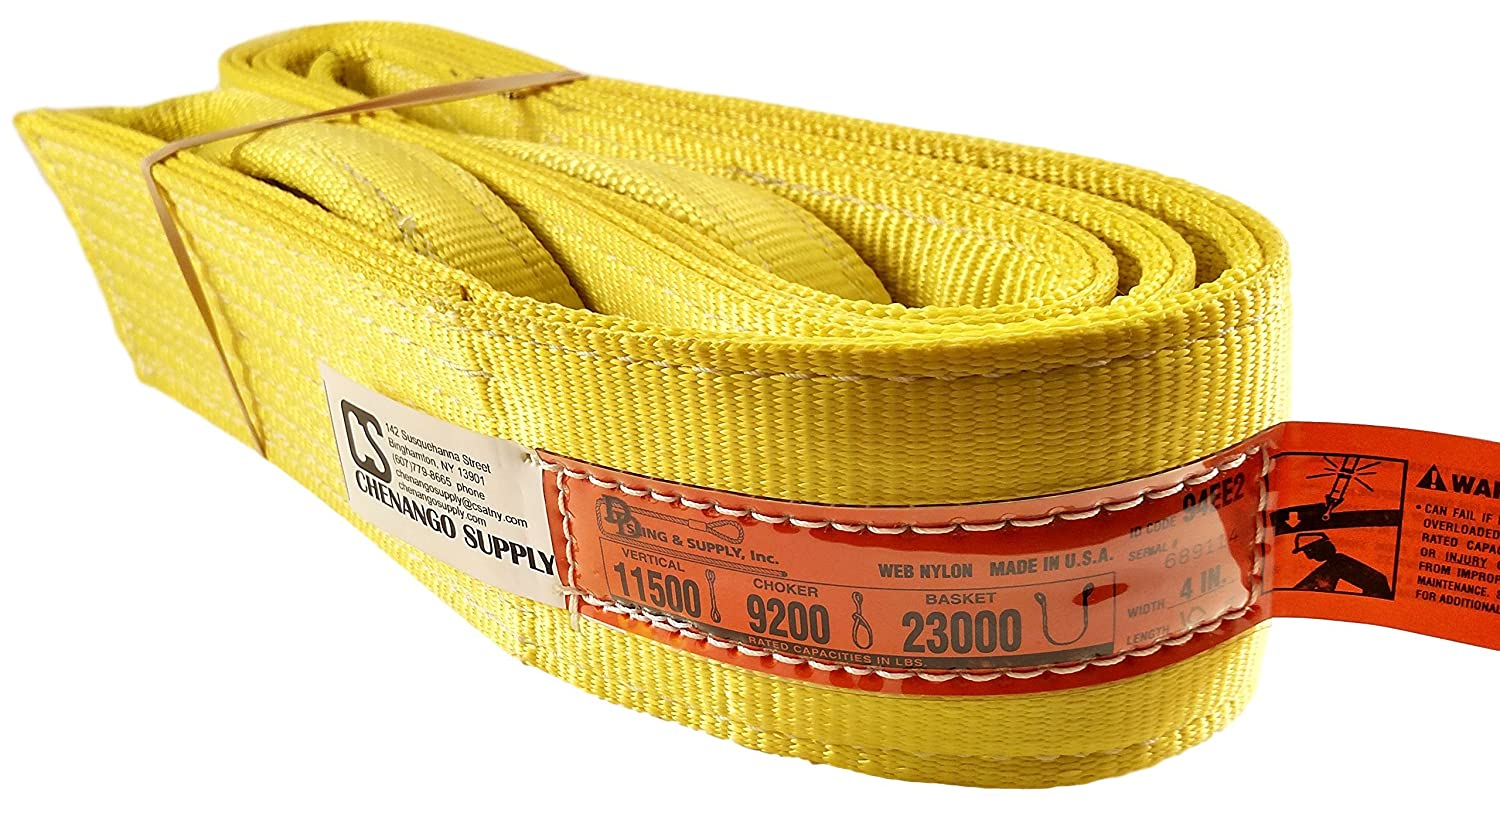 6,400 lbs Vertical Made in USA 2 x 8 DD Sling 2x8 12,800 Basket Load Capacity 5,100 Choker Multiple Sizes in Listing! Eye /& Eye 2 Ply USA Made Nylon Webbing 900 webbing Nylon Lifting Slings Heavy Duty